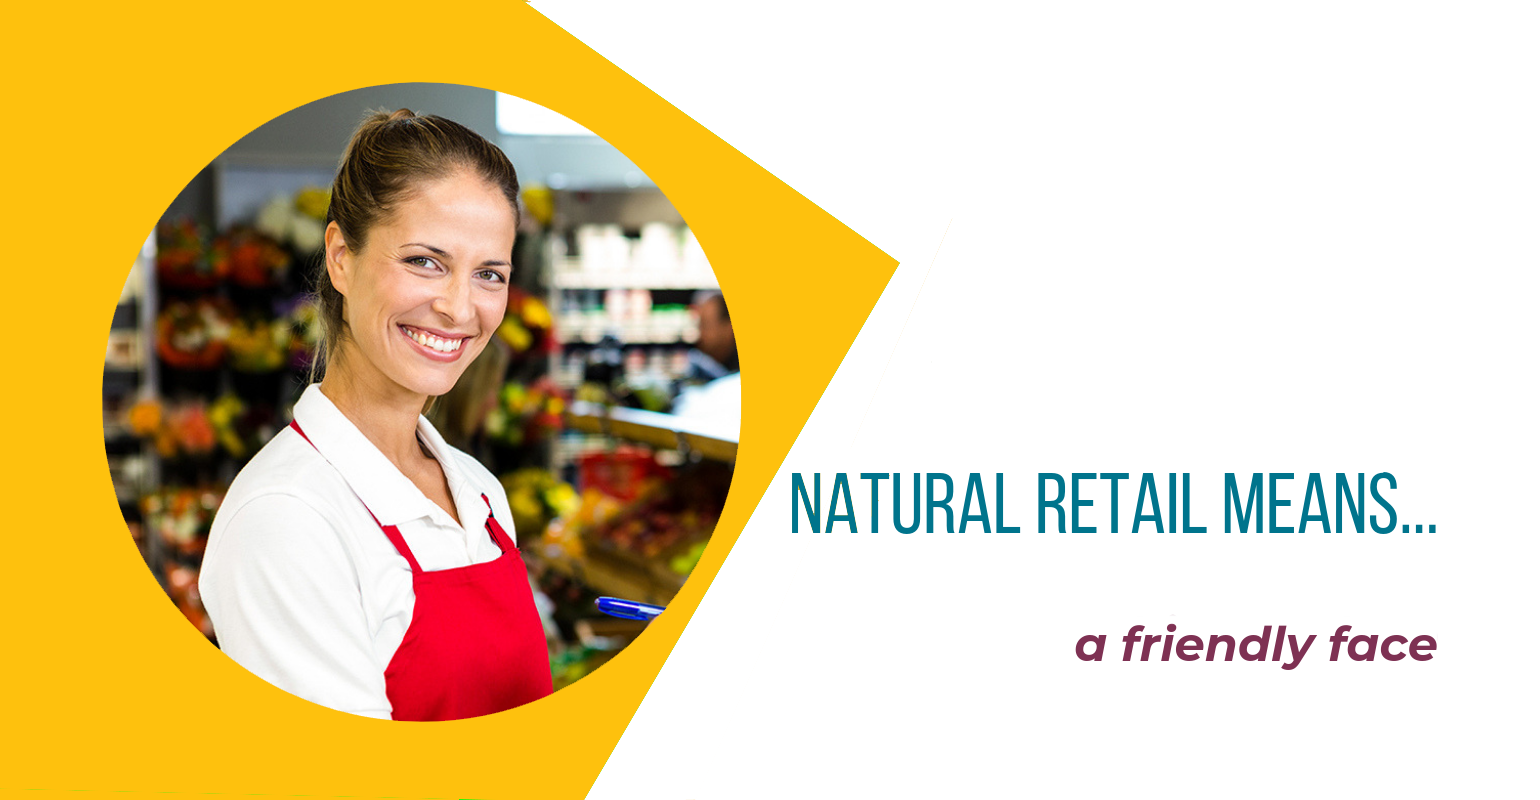 Natural retail means a friendly face